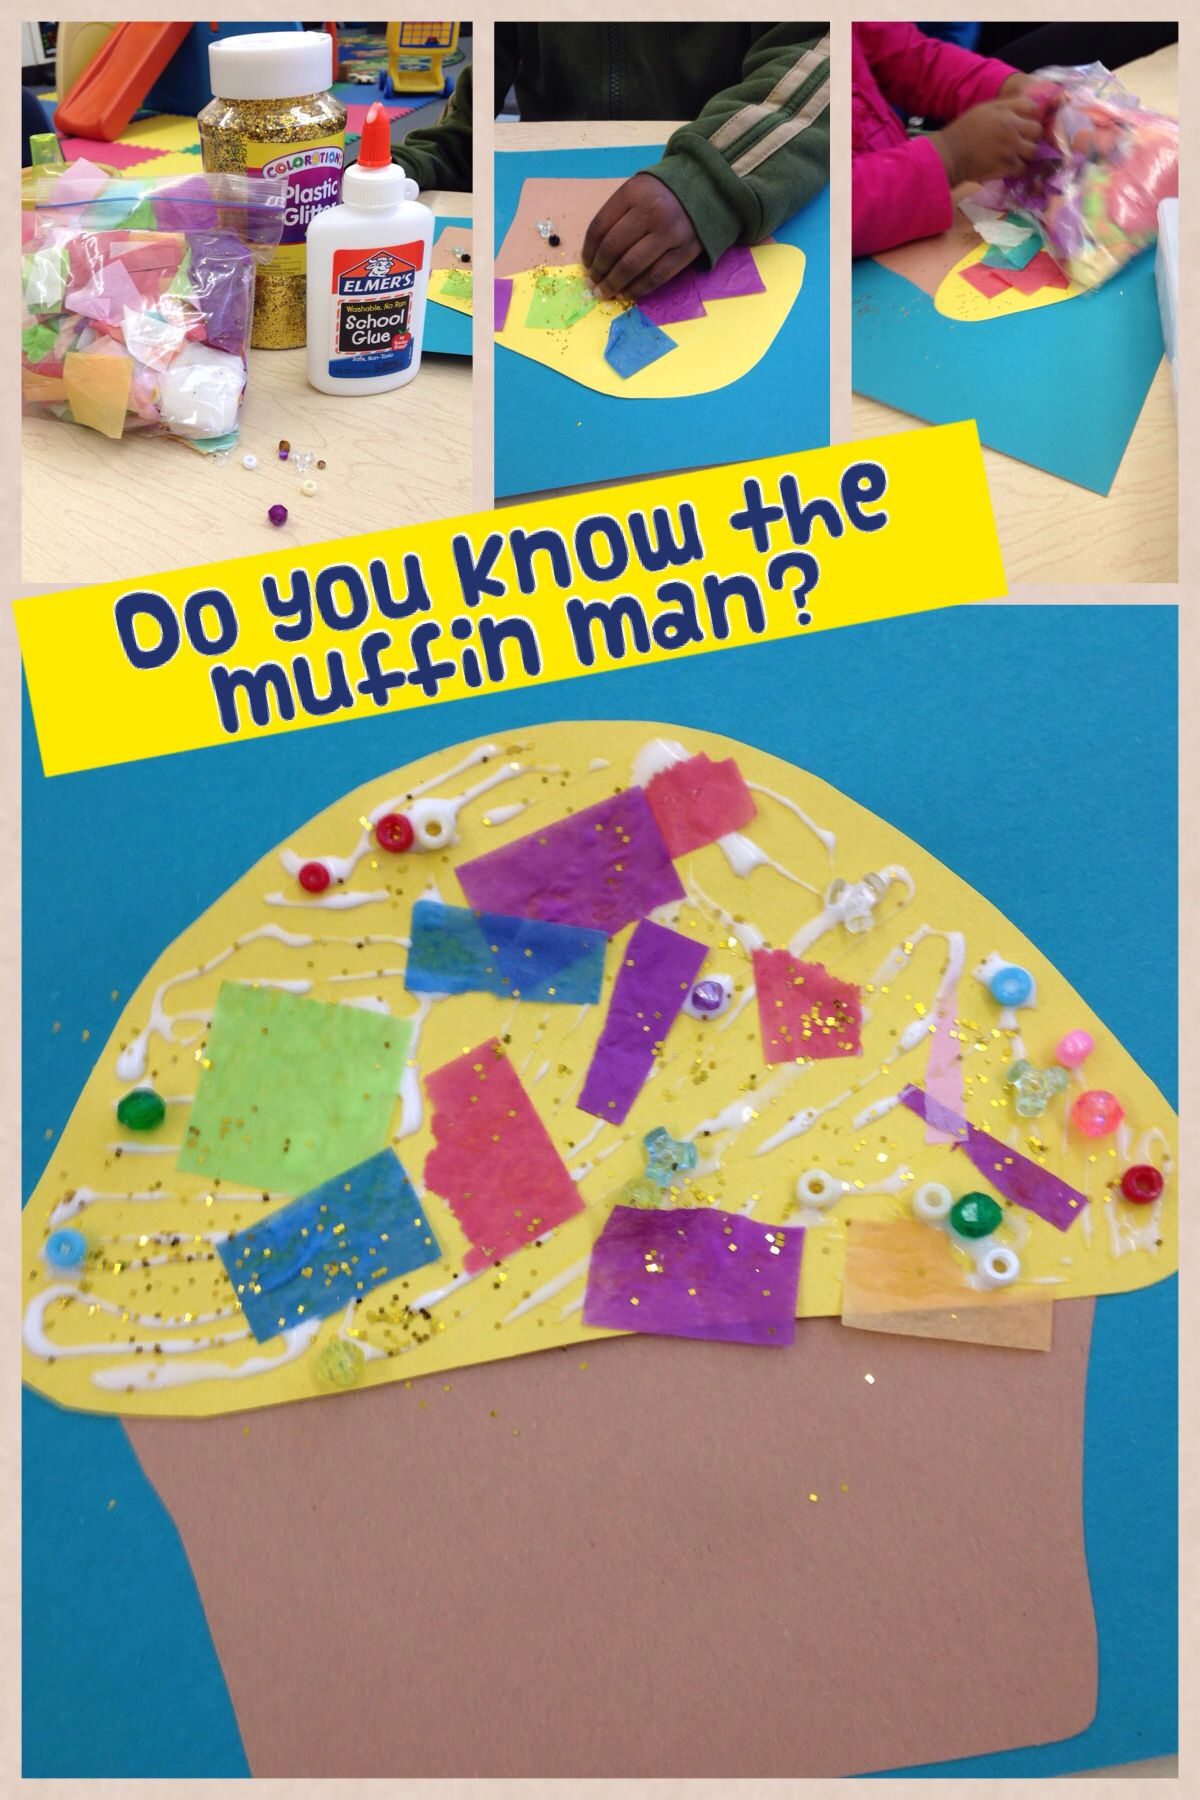 We Decorated A Paper Muffin For Our Nursery Rhyme Theme Do You Know The Muffin Man